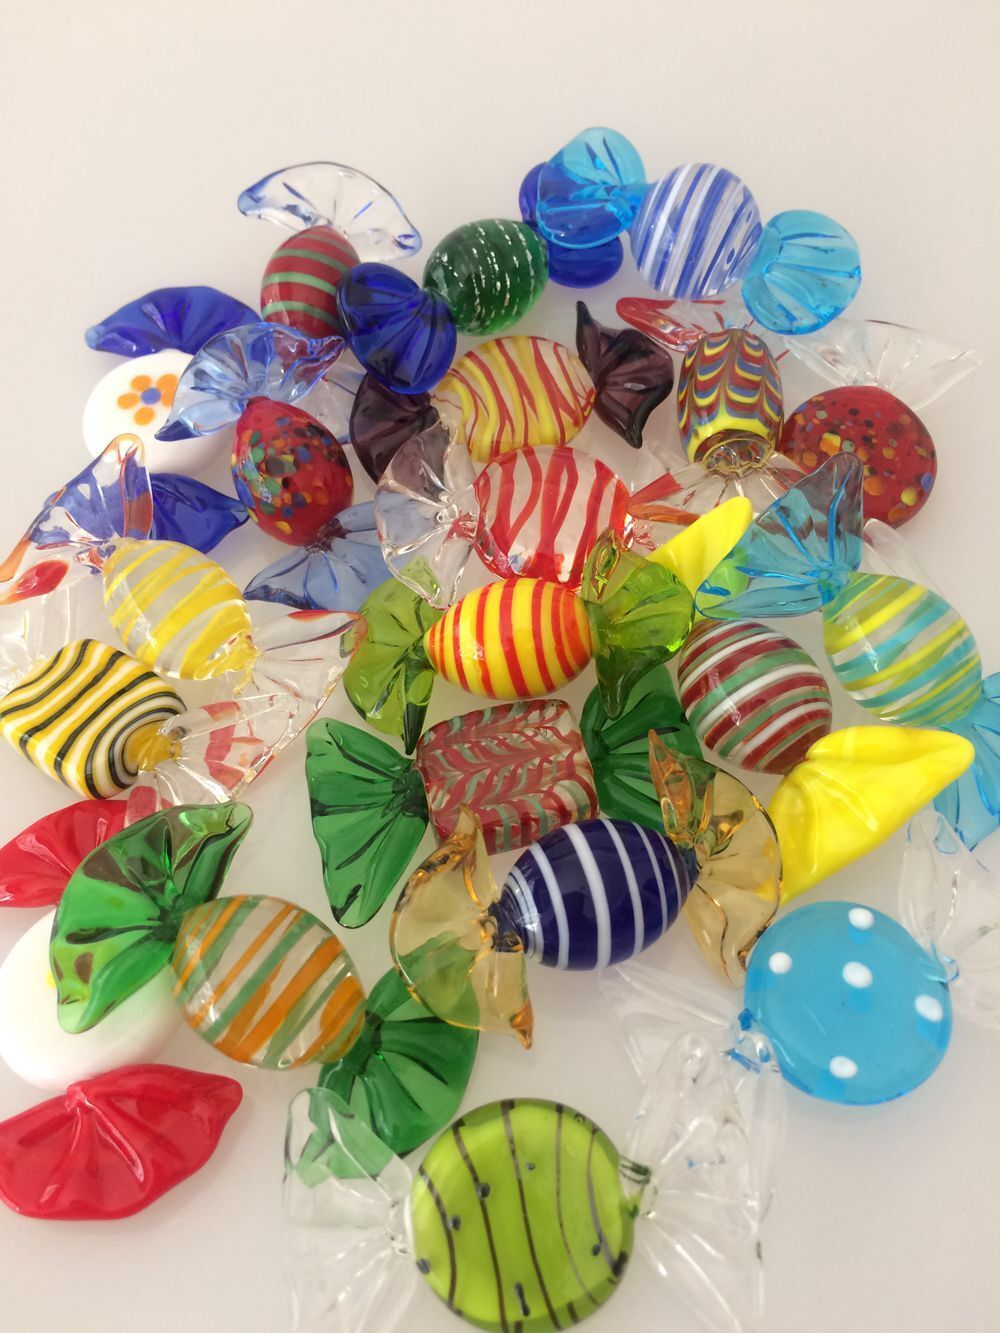 20pcs Vintage Murano Glass Sweets Wedding Xmas Party Candy